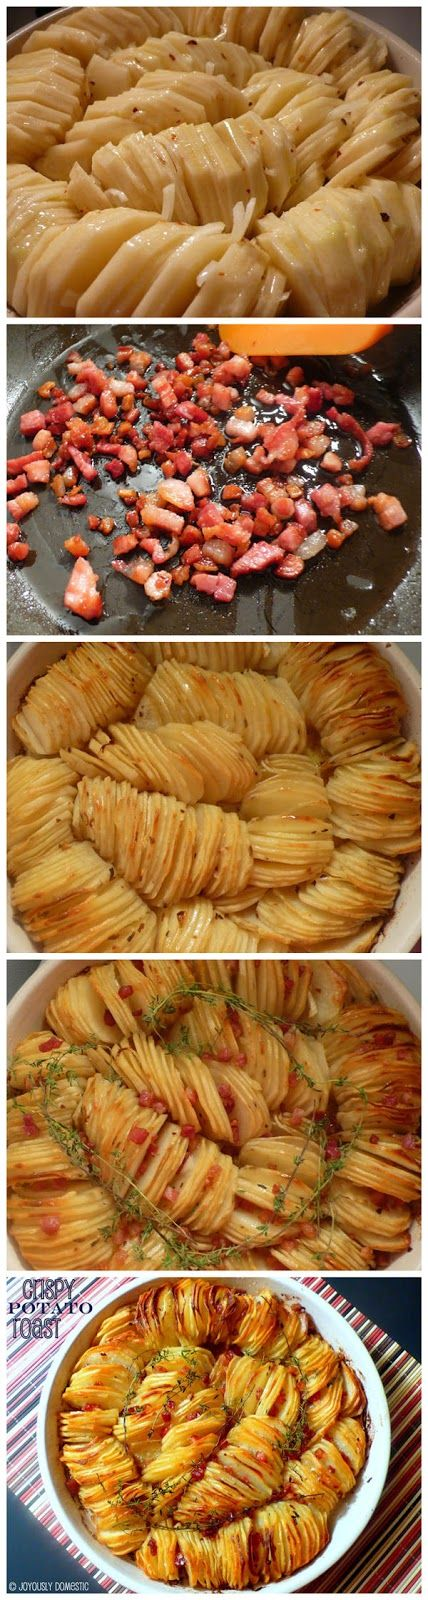 If you have a mandolin, it would make quick work of slicing these potatoes...so pretty to add to an oven...